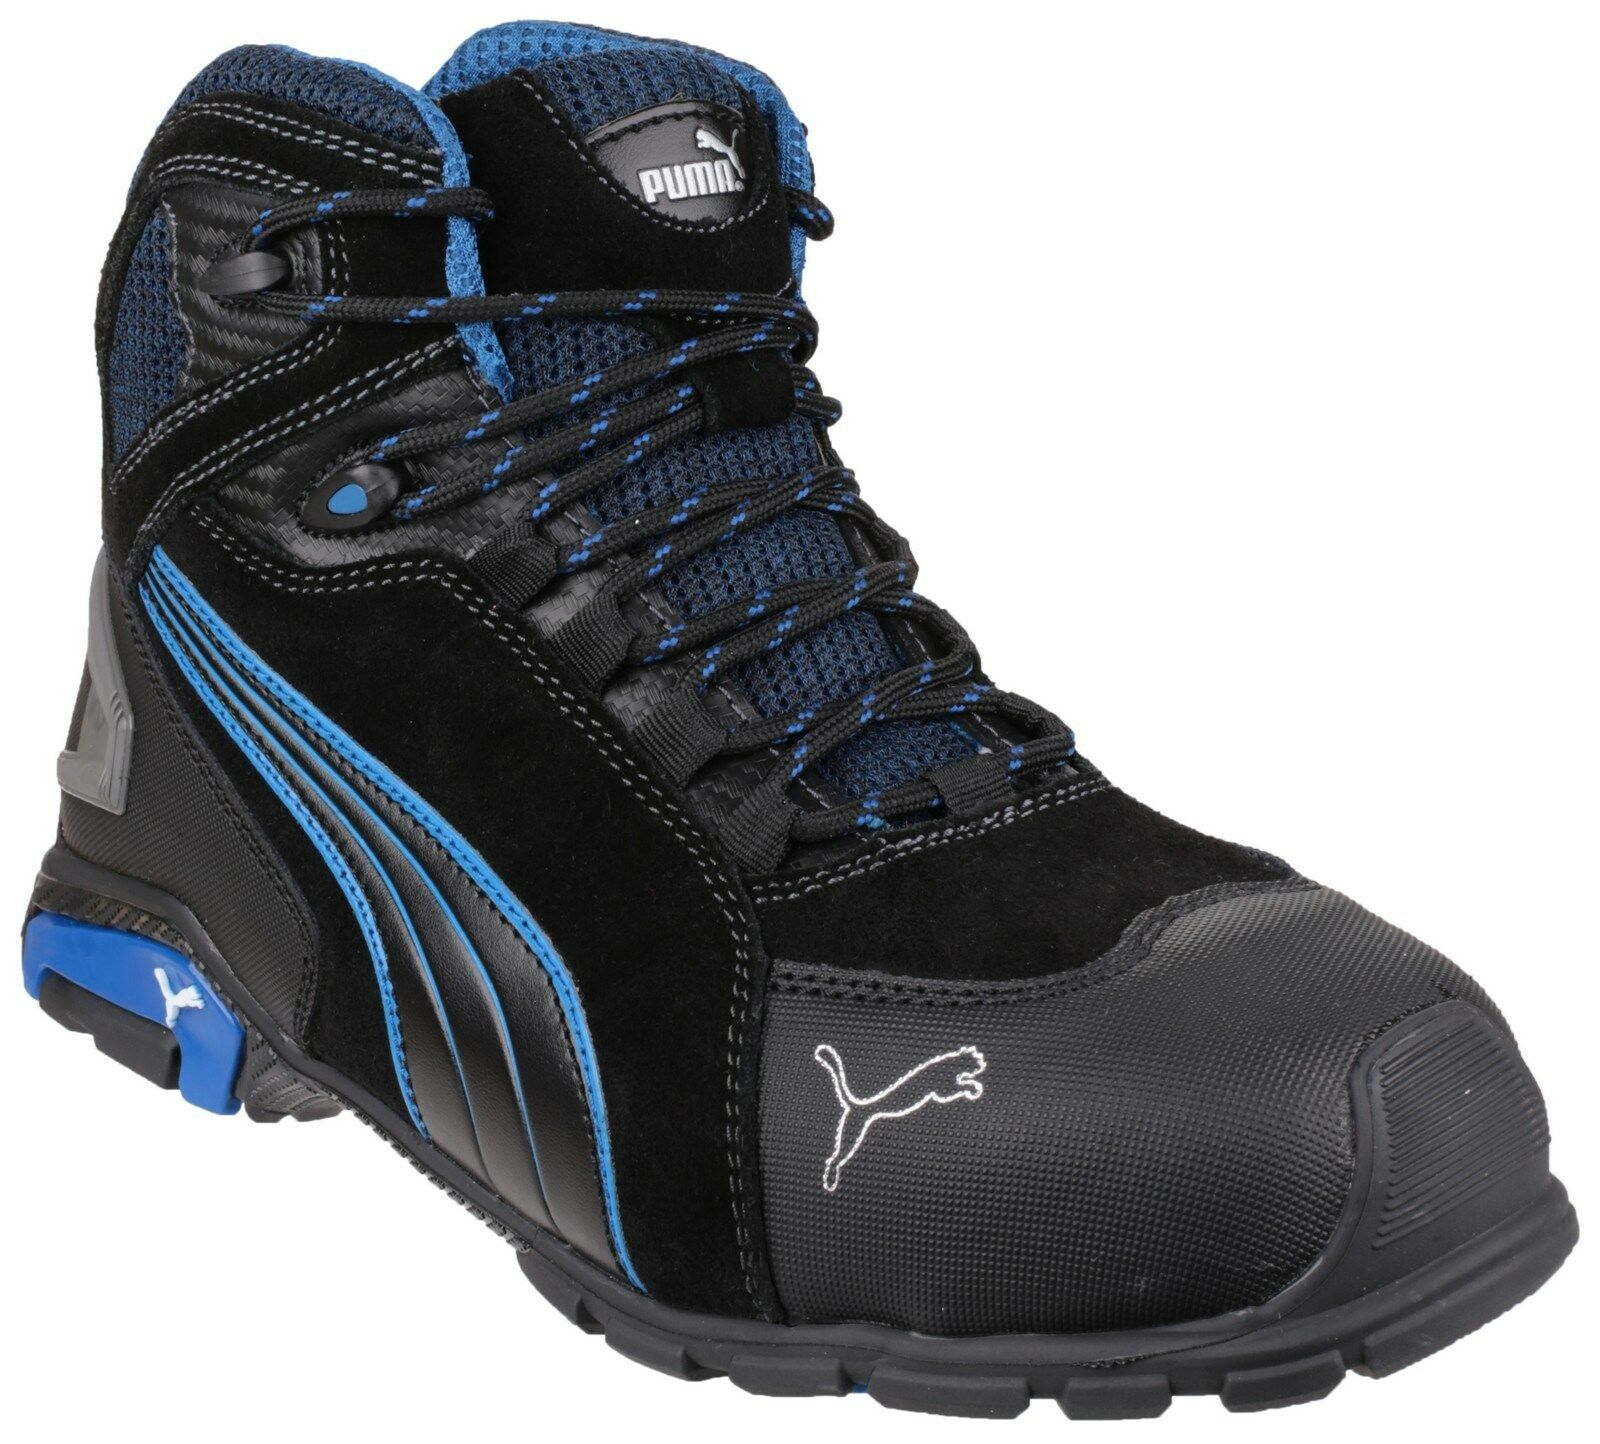 Details about Puma Rio Mid Safety Mens Aluminium Toe Cap Industrial Work Boots UK6 12